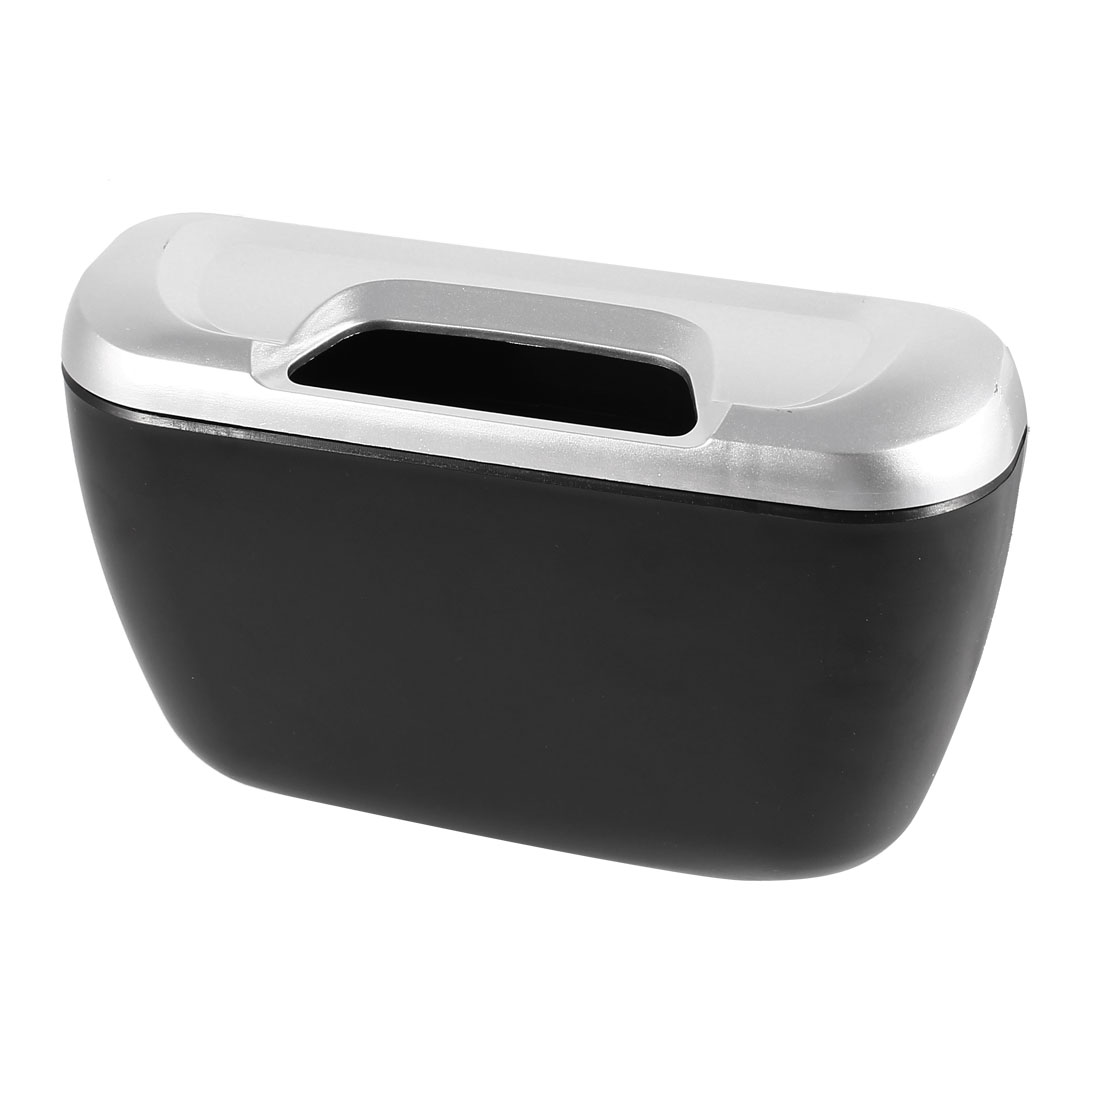 Car Auto Trash Bin Black Silver Tone Plastic Garbage Holder w Hook